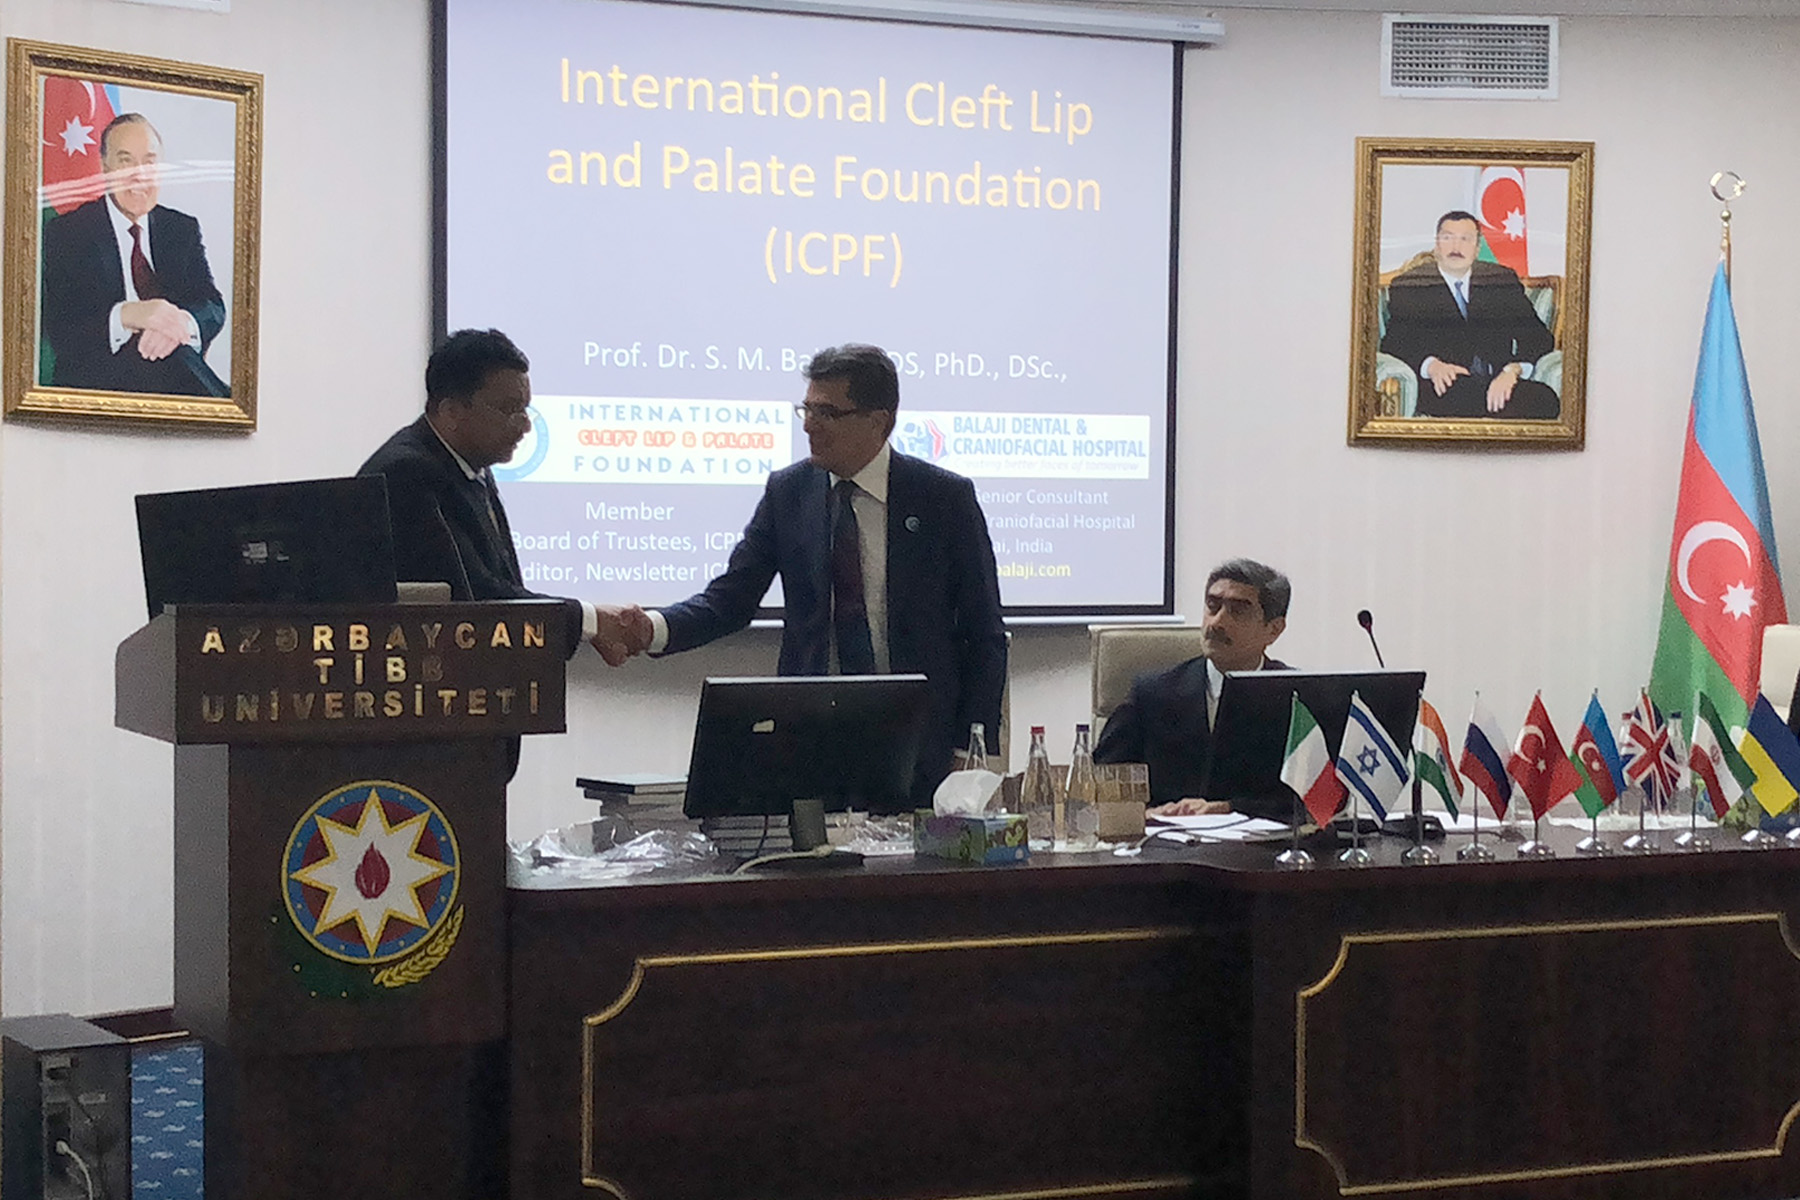 Dr Sm Balaji With Dr Chingiz Rahimov At The Beginning Of His Introductory Talk About The International Cleft Lip And Palate Foundation (Icpf)